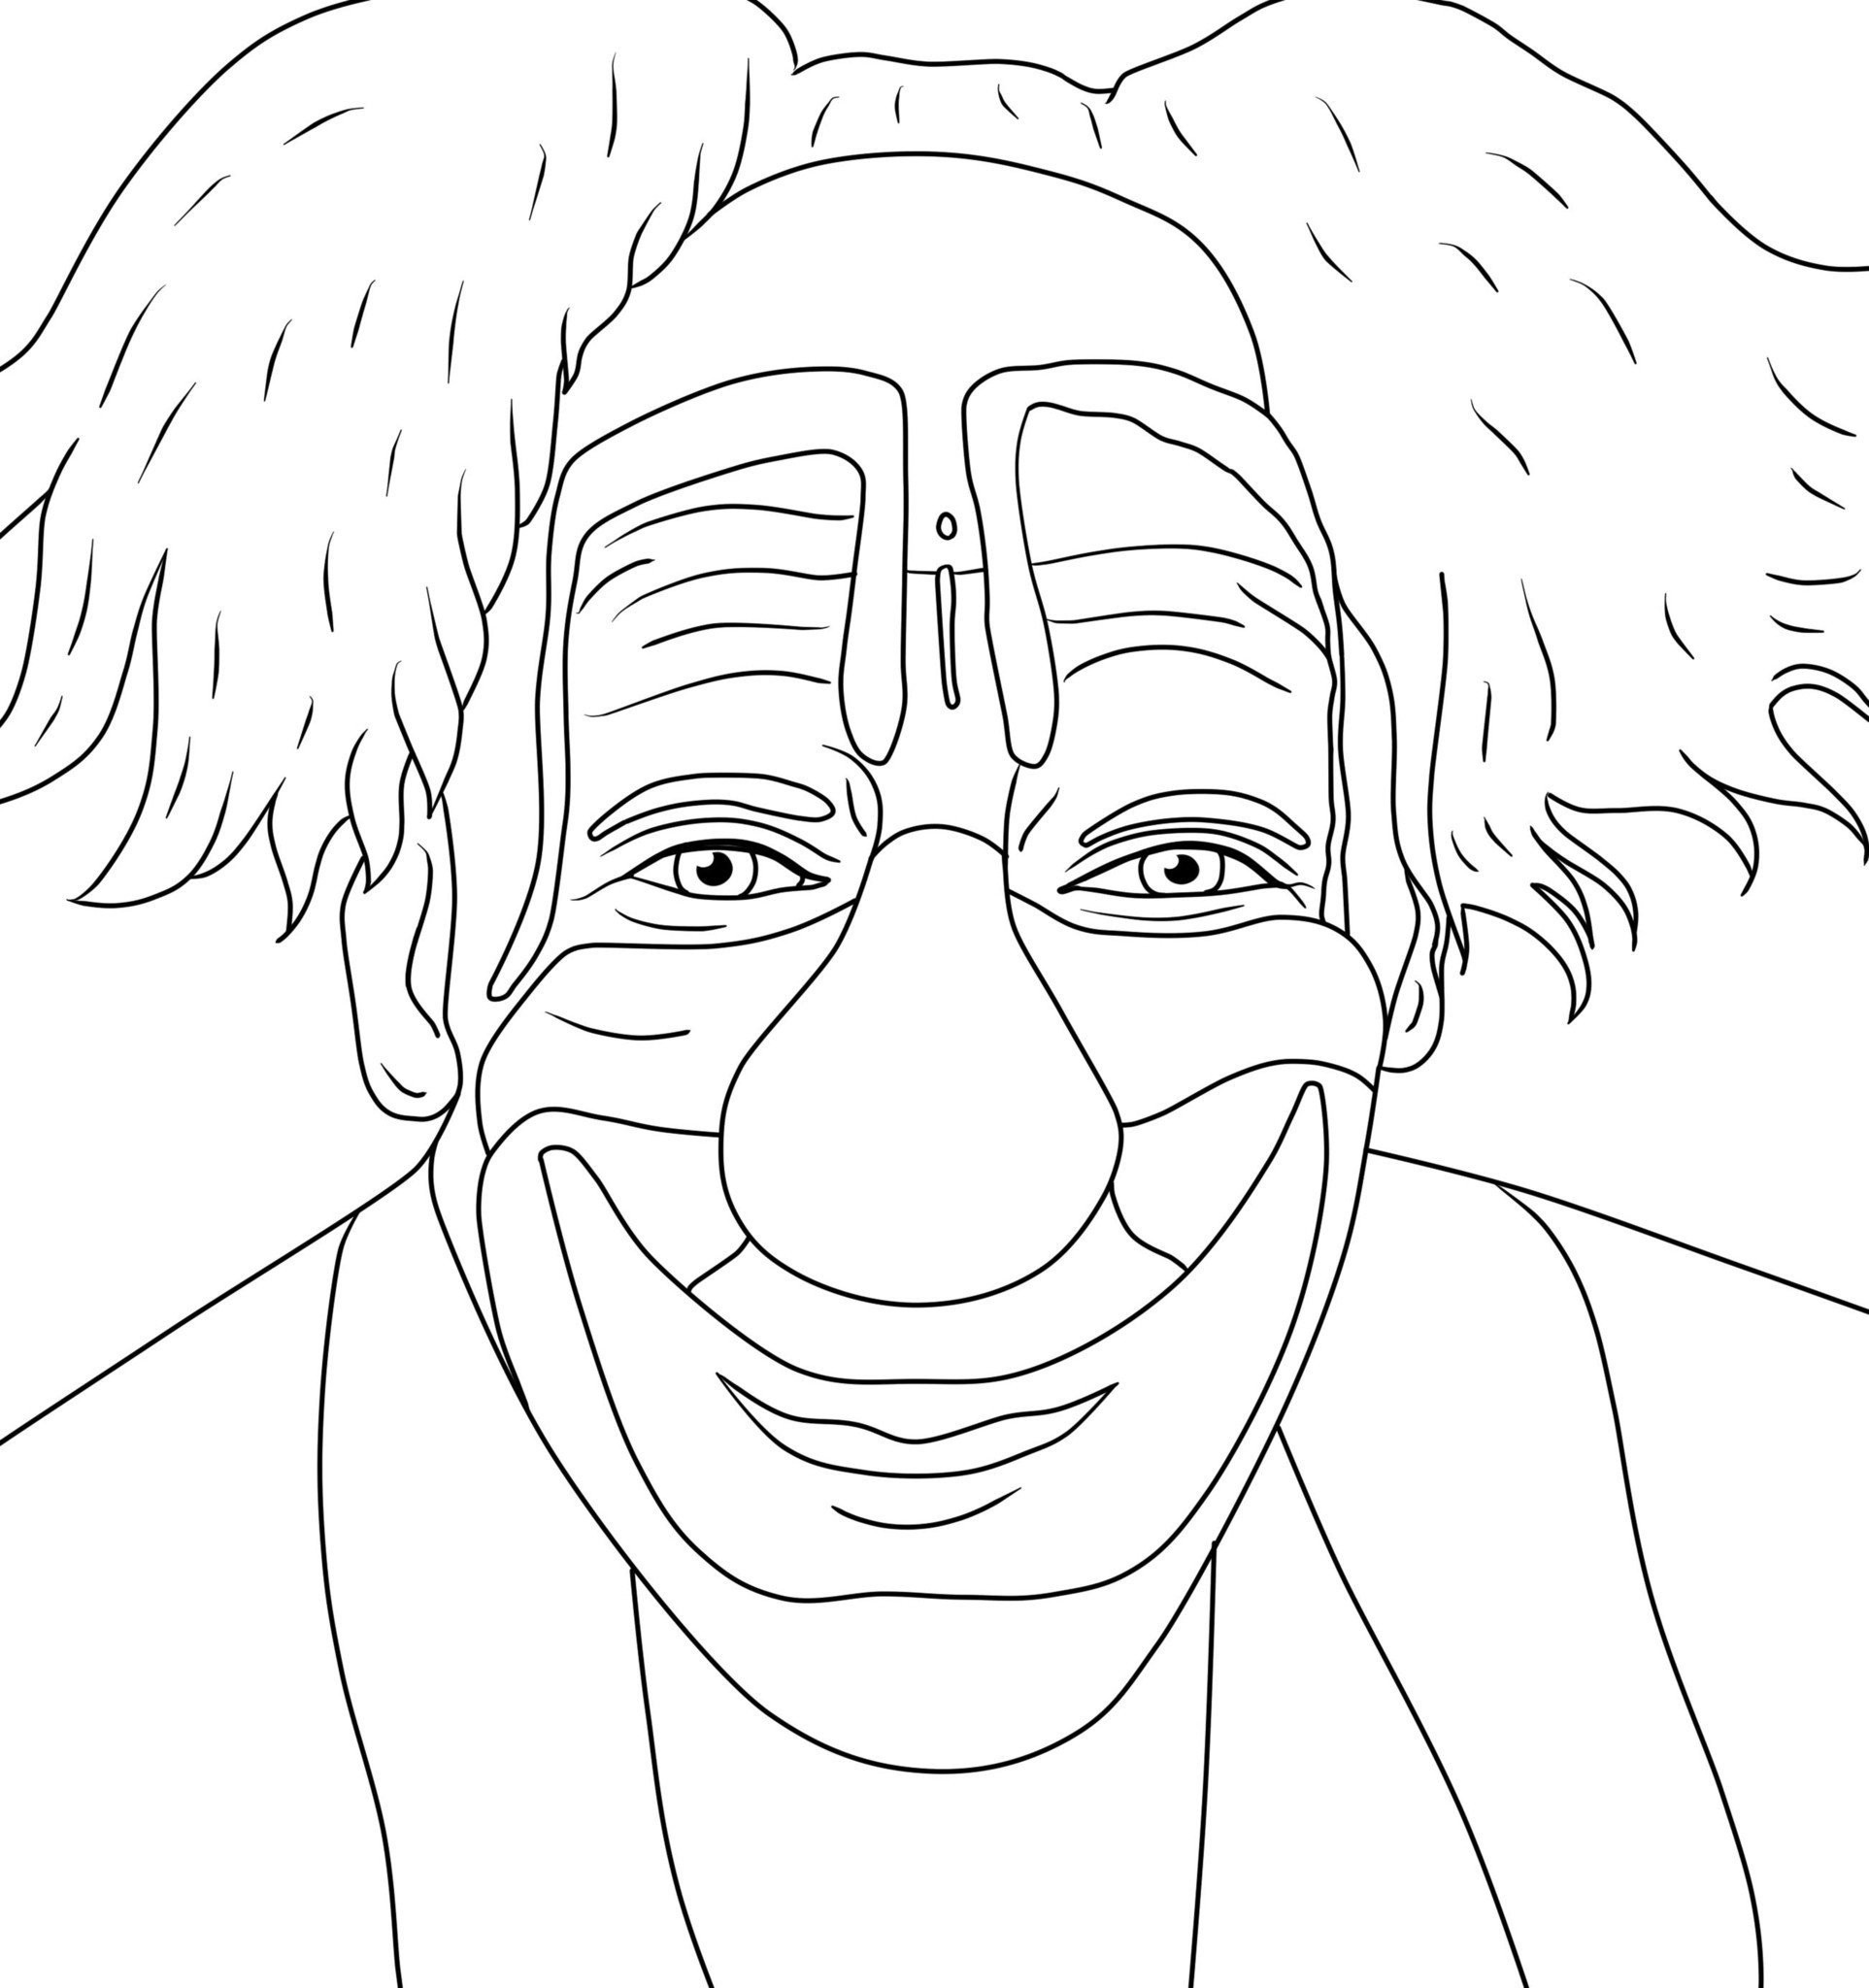 Creepy Coloring Pages For Adults At Getdrawings Com Free For